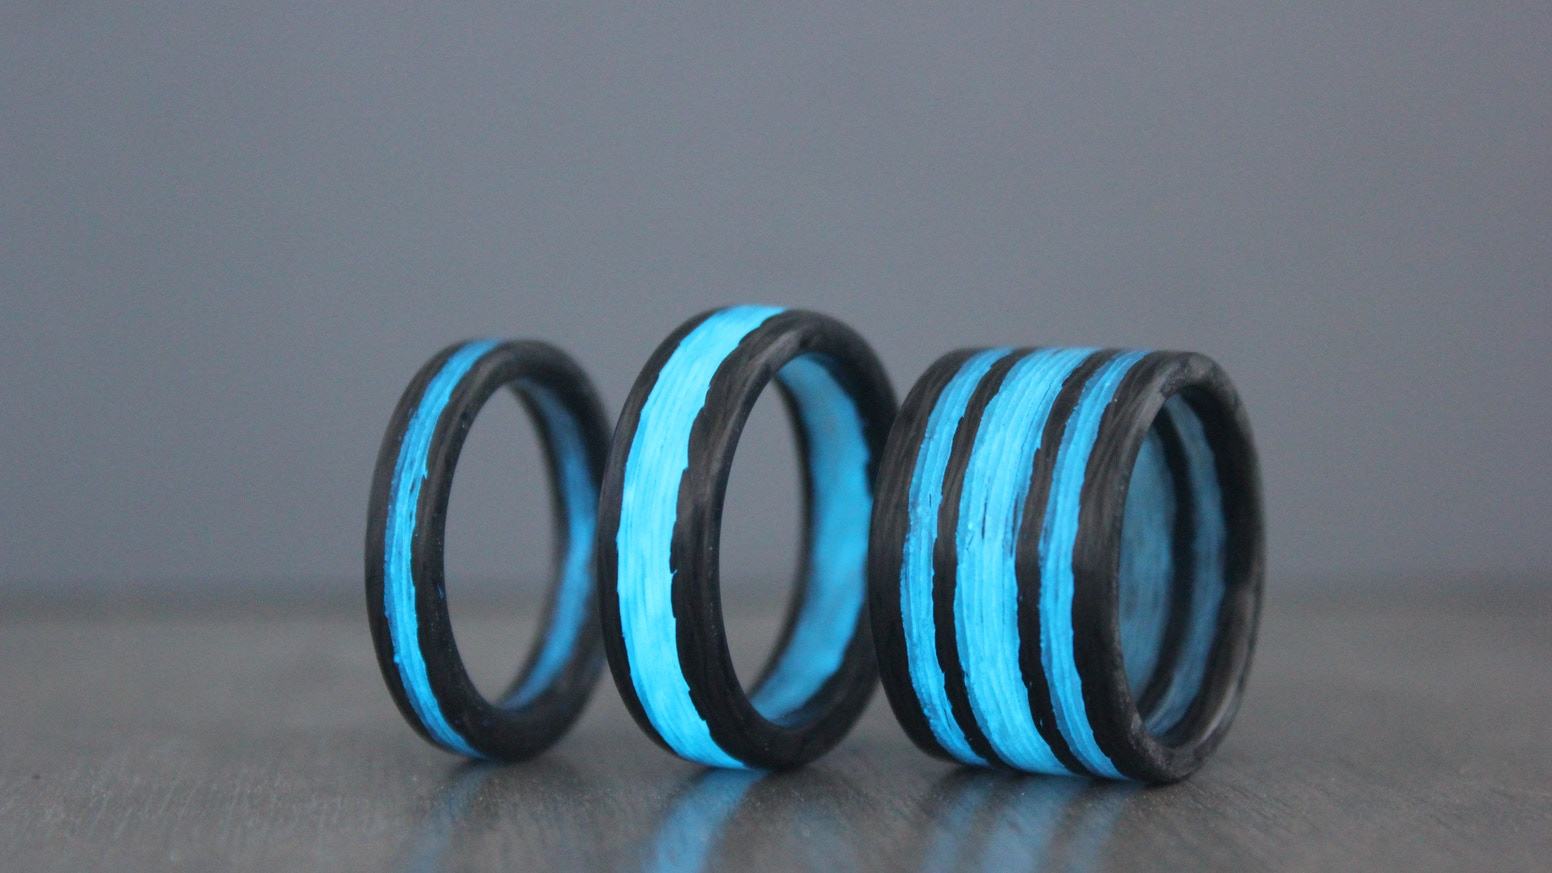 the carbon offer lume projects luminescent paul rings unique modern glow wedding forged a band and john by our fiber easley take on traditional original